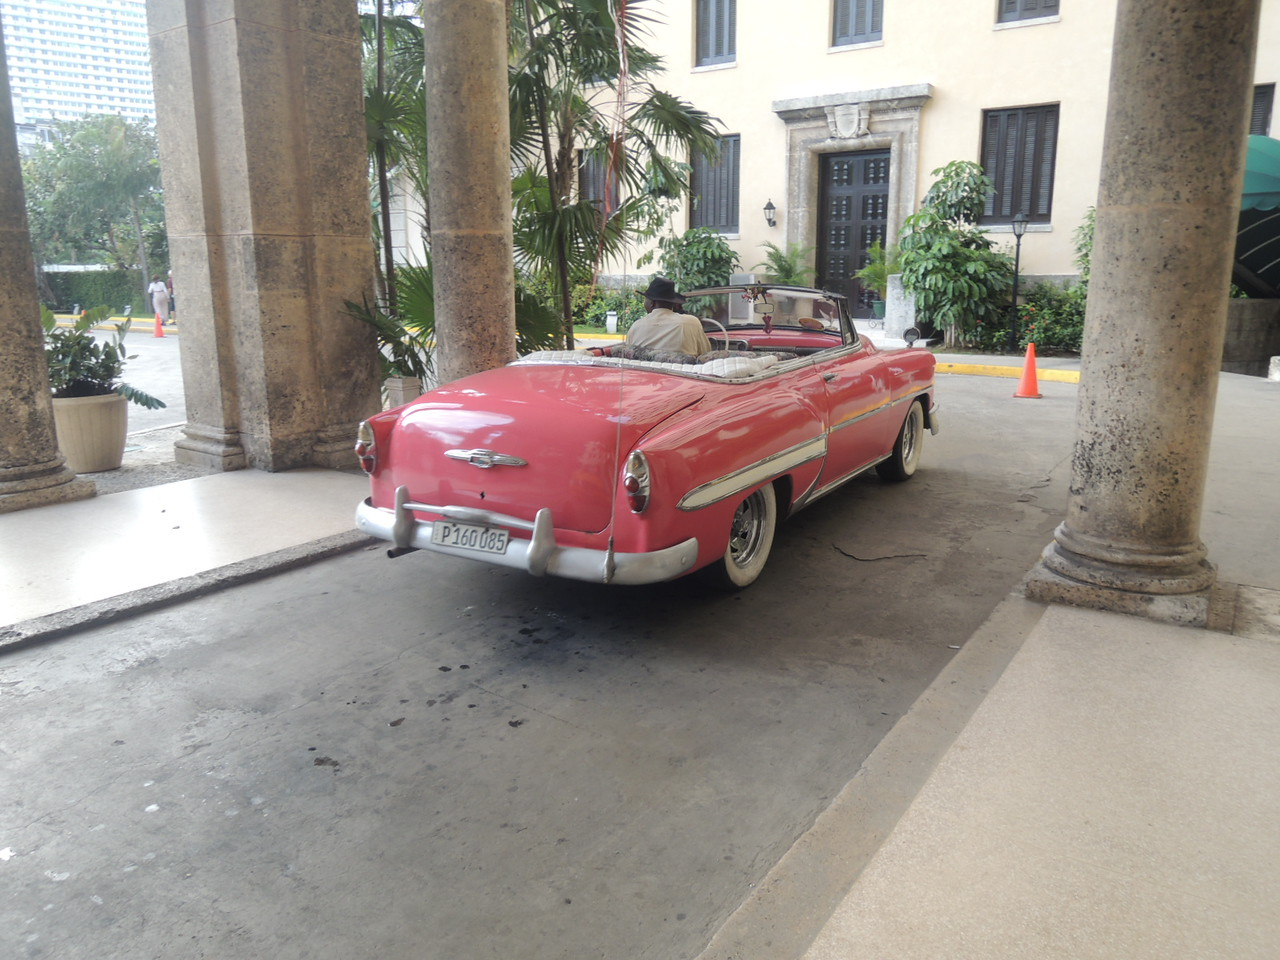 53 or 54 Chevy at the entrance of the Hotel Nacional.